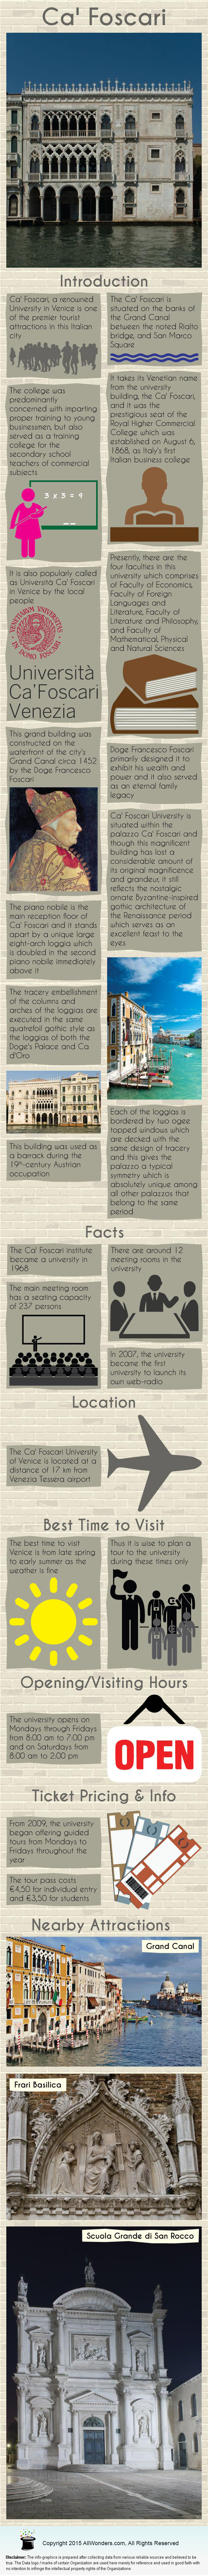 Ca' Foscari University Infographic